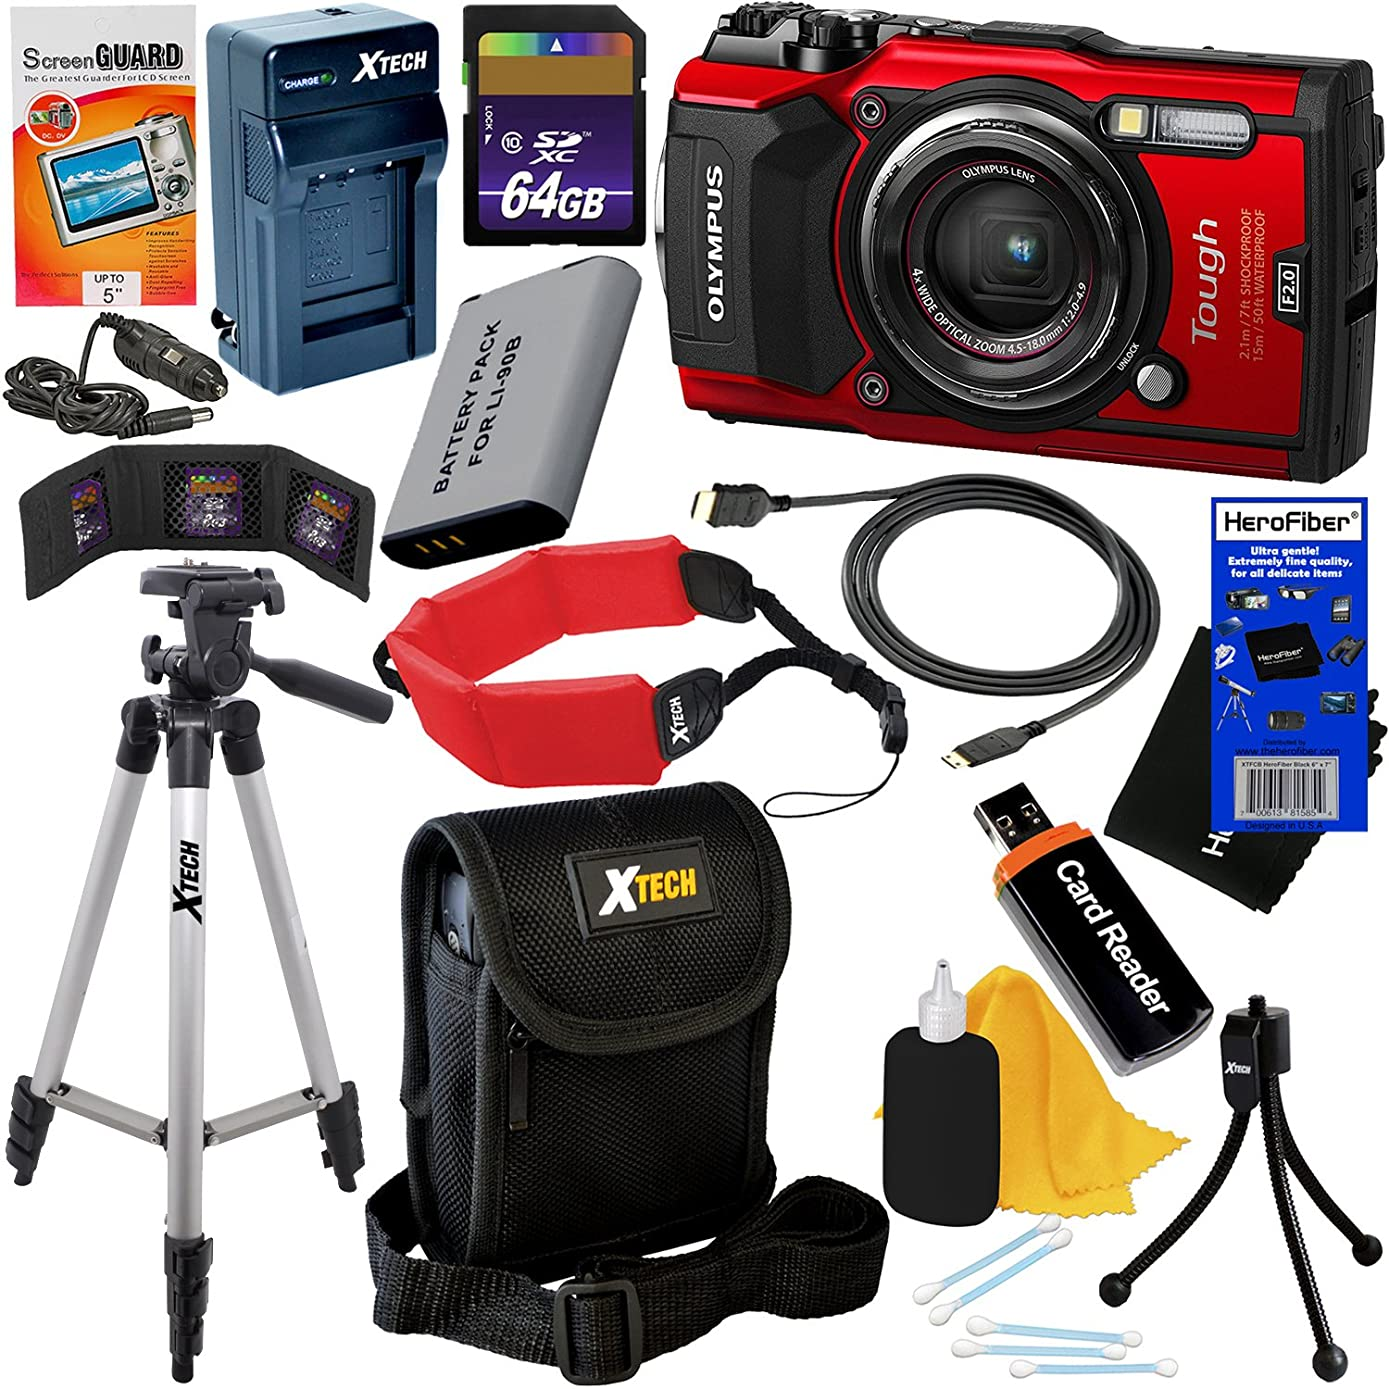 Olympus Tough TG-5 Waterproof, Shockproof, Freezeproof & Crushproof Wi-Fi Digital Camera with GPS & HD 4K Video, Red (International Version) + Battery & Charger + 11pc 64GB DLX Kit w/HeroFiber Cloth